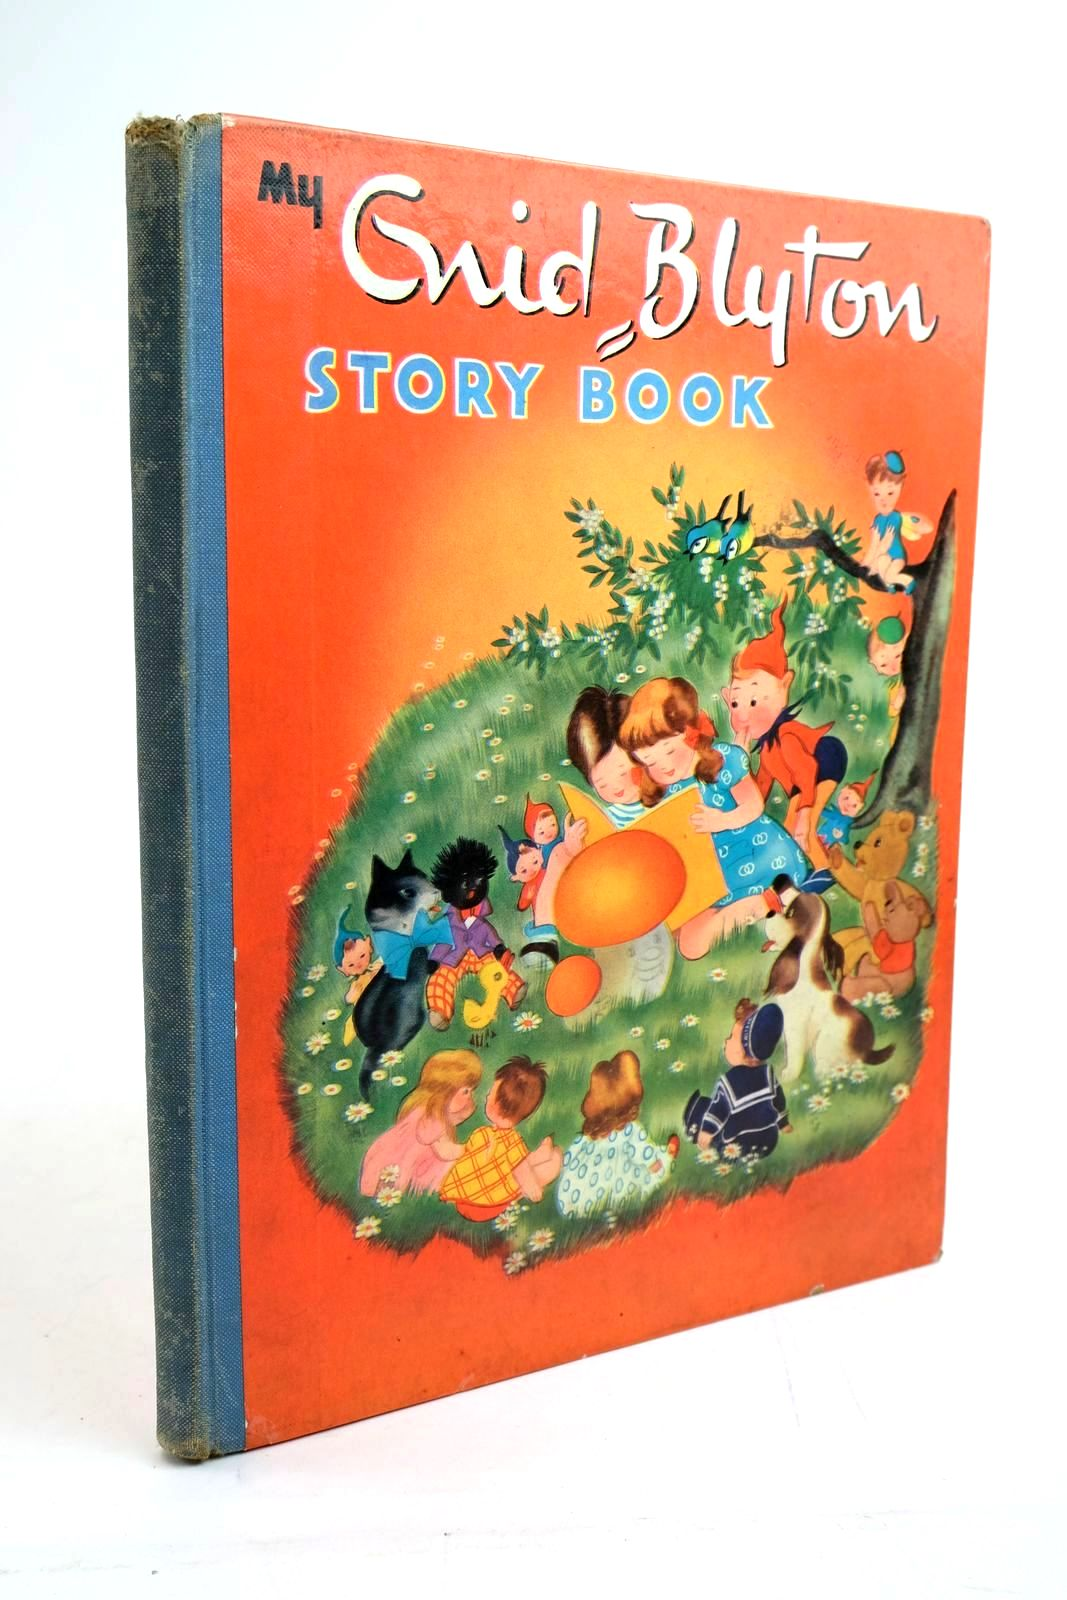 Photo of MY ENID BLYTON STORY BOOK written by Blyton, Enid illustrated by Schermele, Willy published by Juvenile Productions Ltd. (STOCK CODE: 1321632)  for sale by Stella & Rose's Books